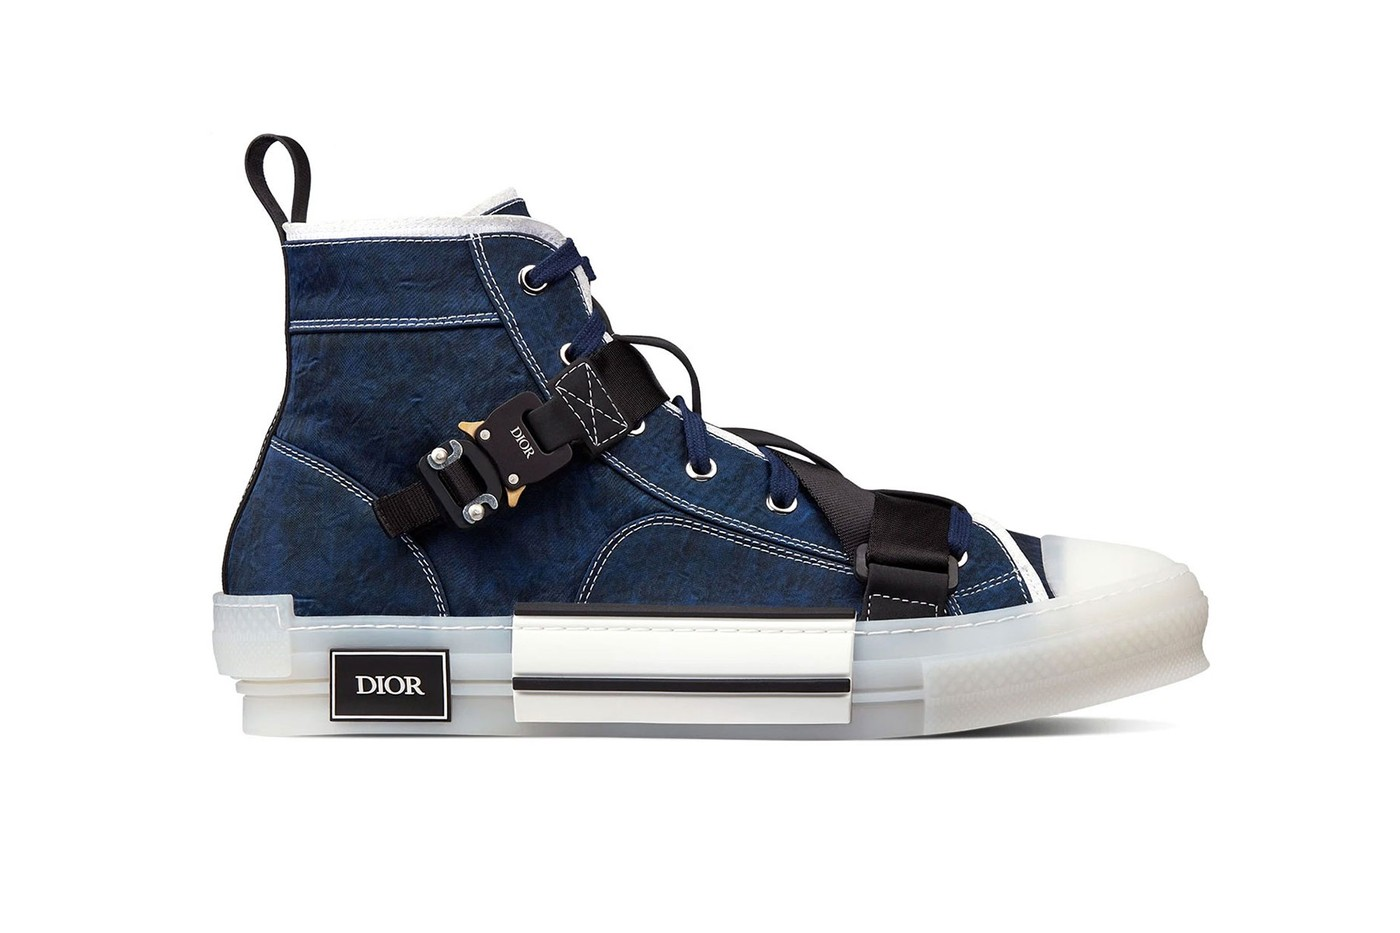 Dior Adds COBRA Buckles to Its B23 Sneaker